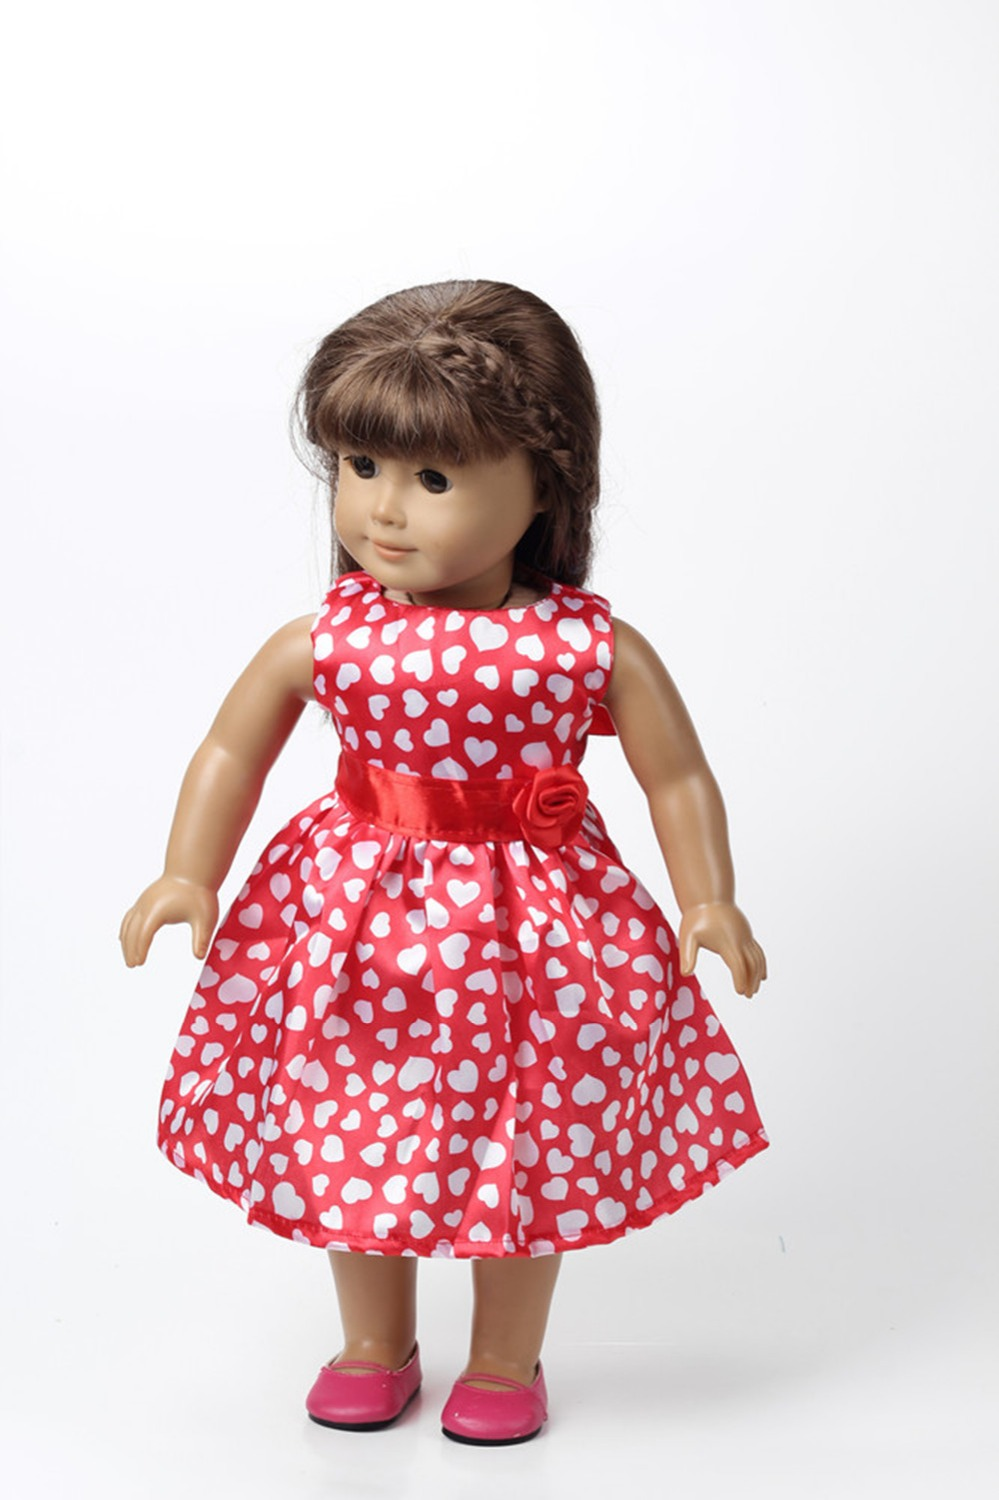 New Style Popular 18 American Girl Doll Clothes Pink Dress Baby Doll Clothes And Accessories